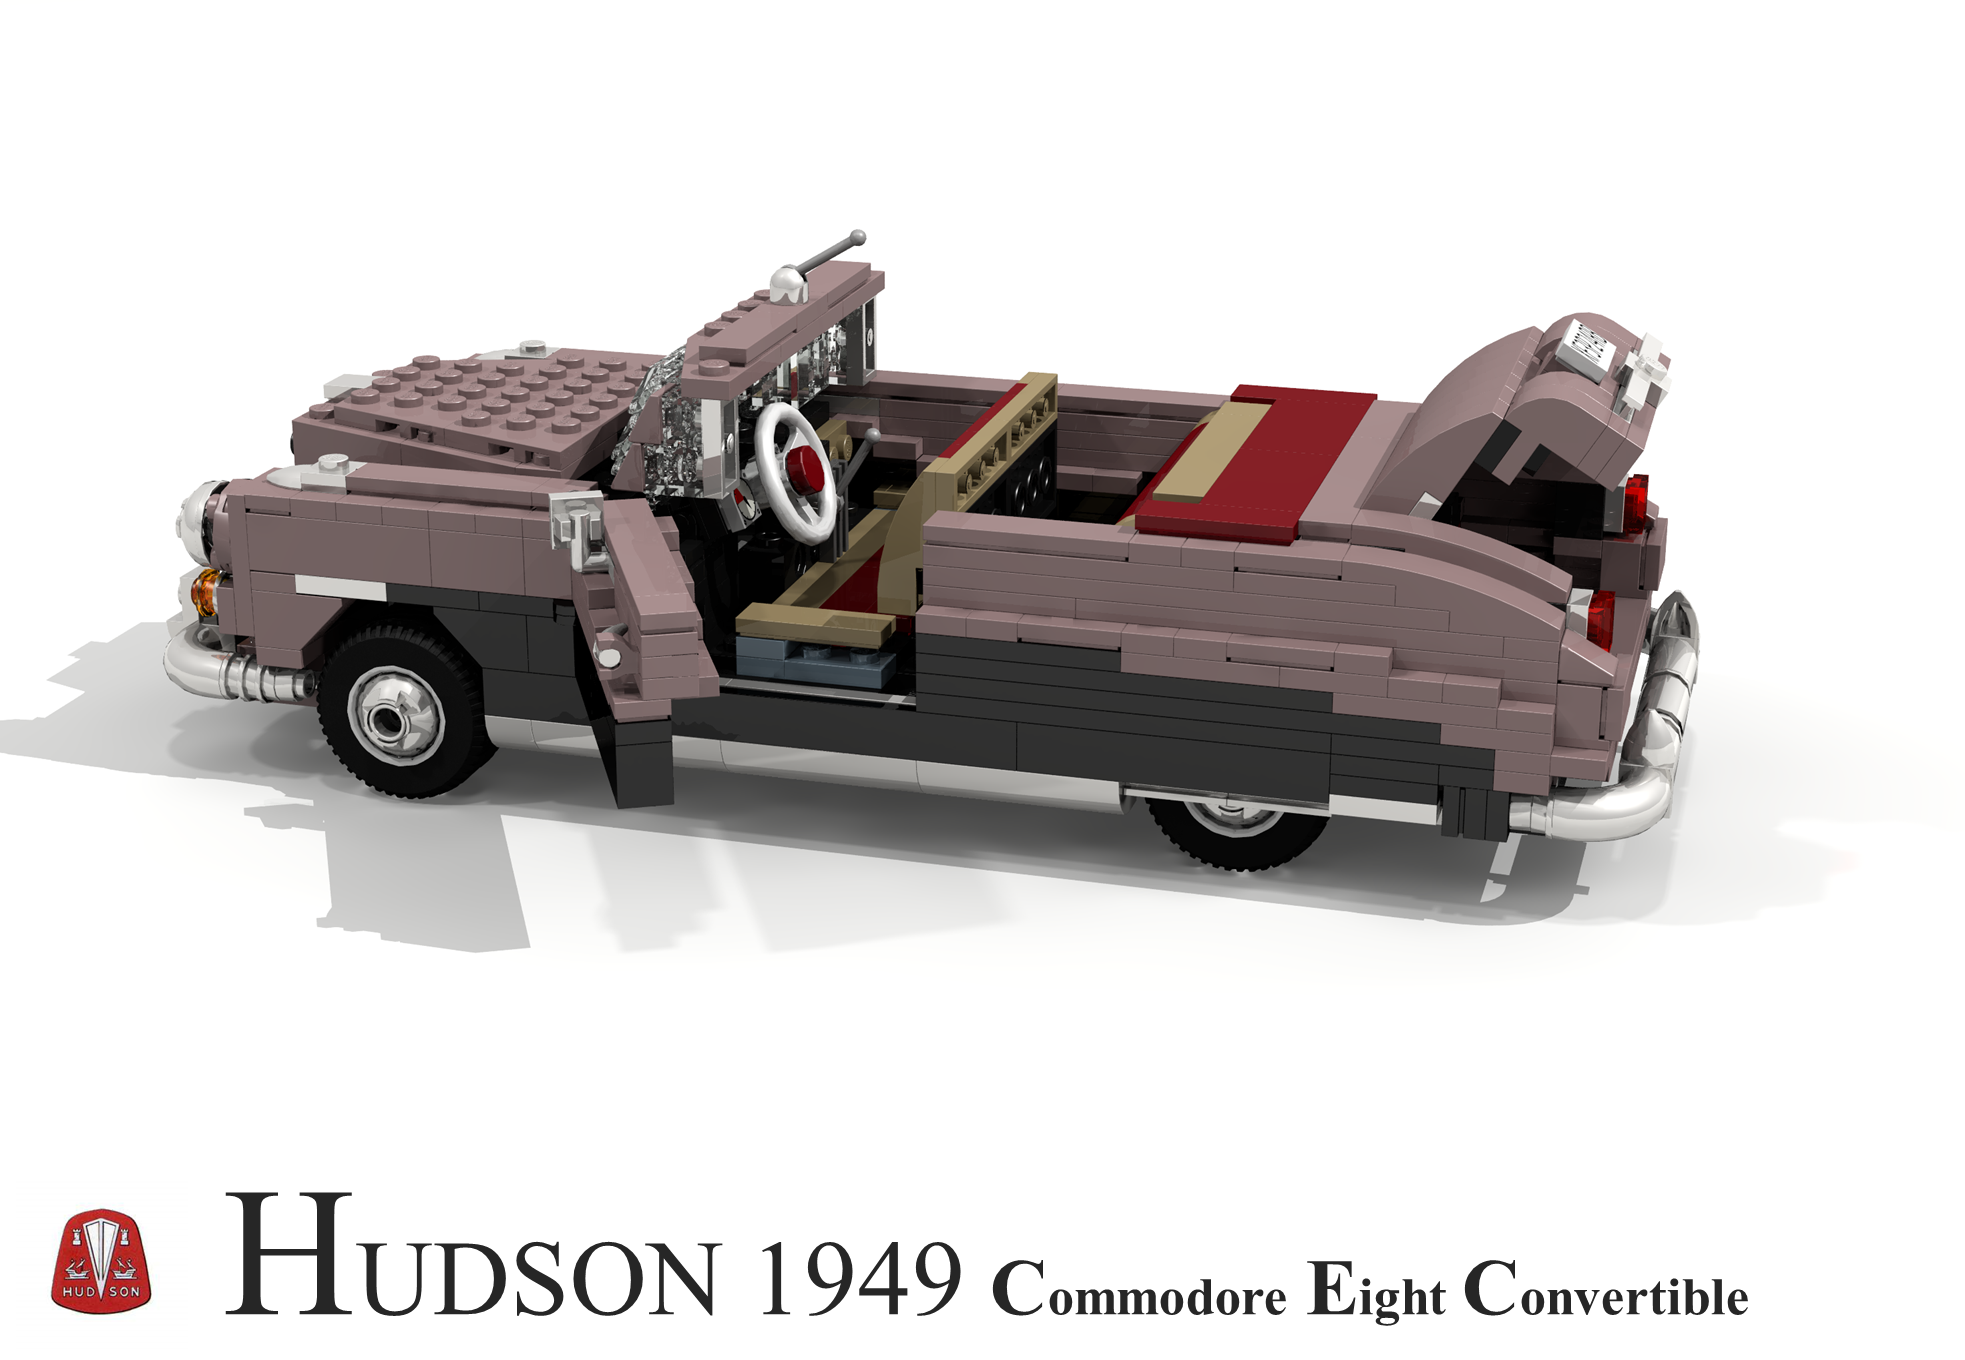 hudson_1949_commodore_eight_convertible_08.png